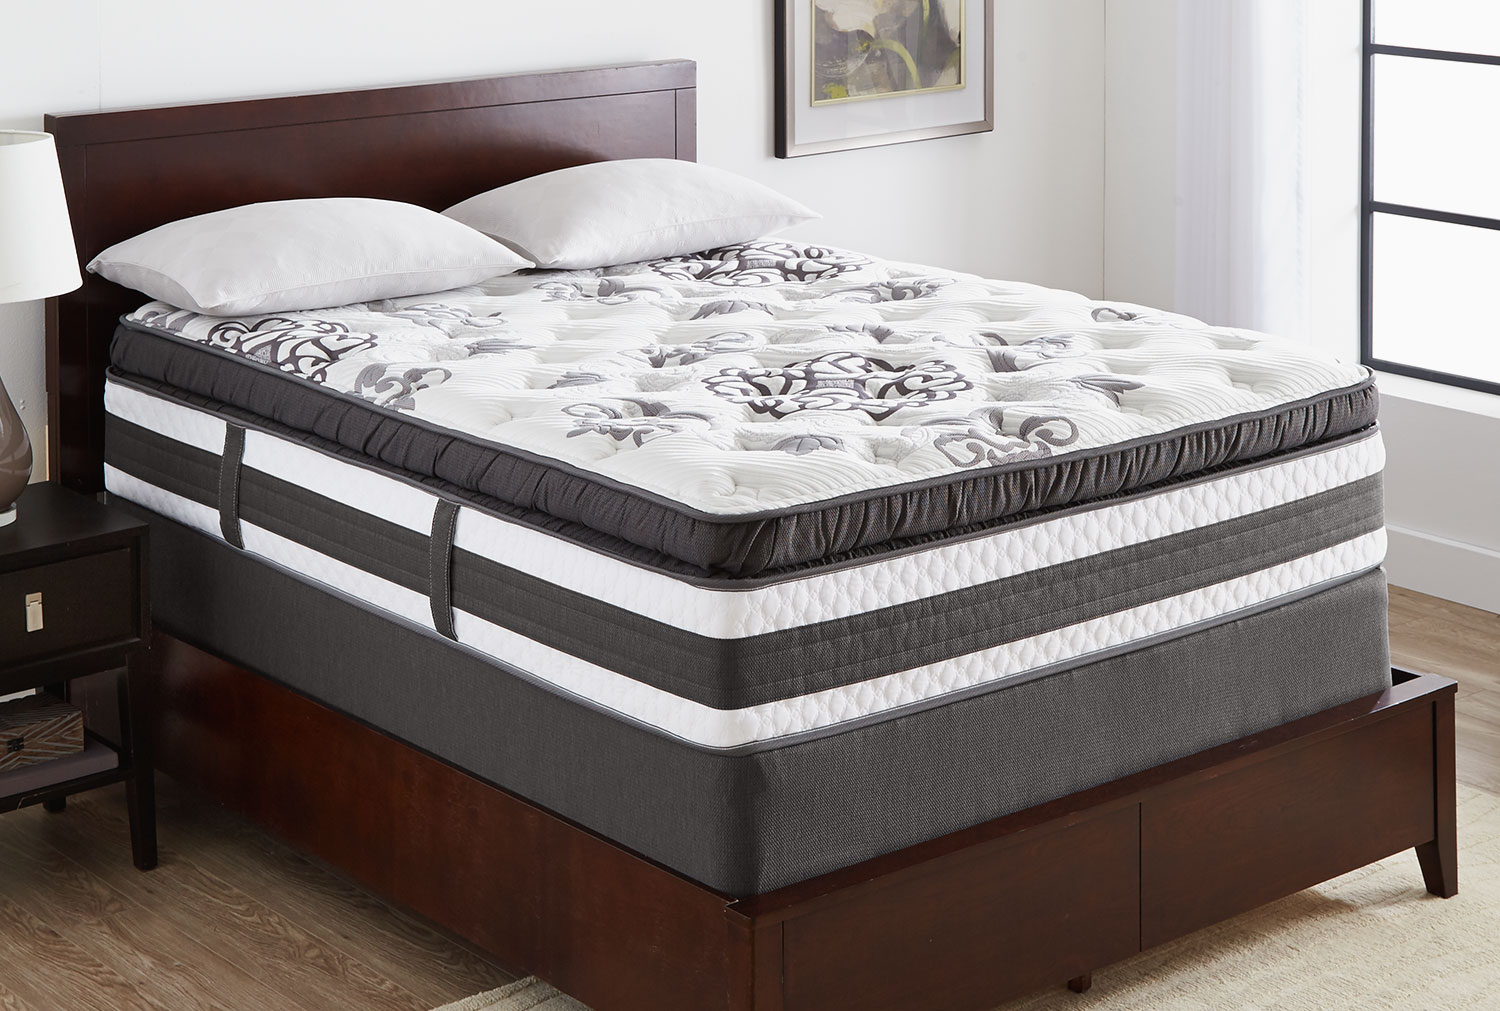 Mattresses and Bedding - Serta iCollection Hopedale Super Pillow-Top Plush Full Mattress Set